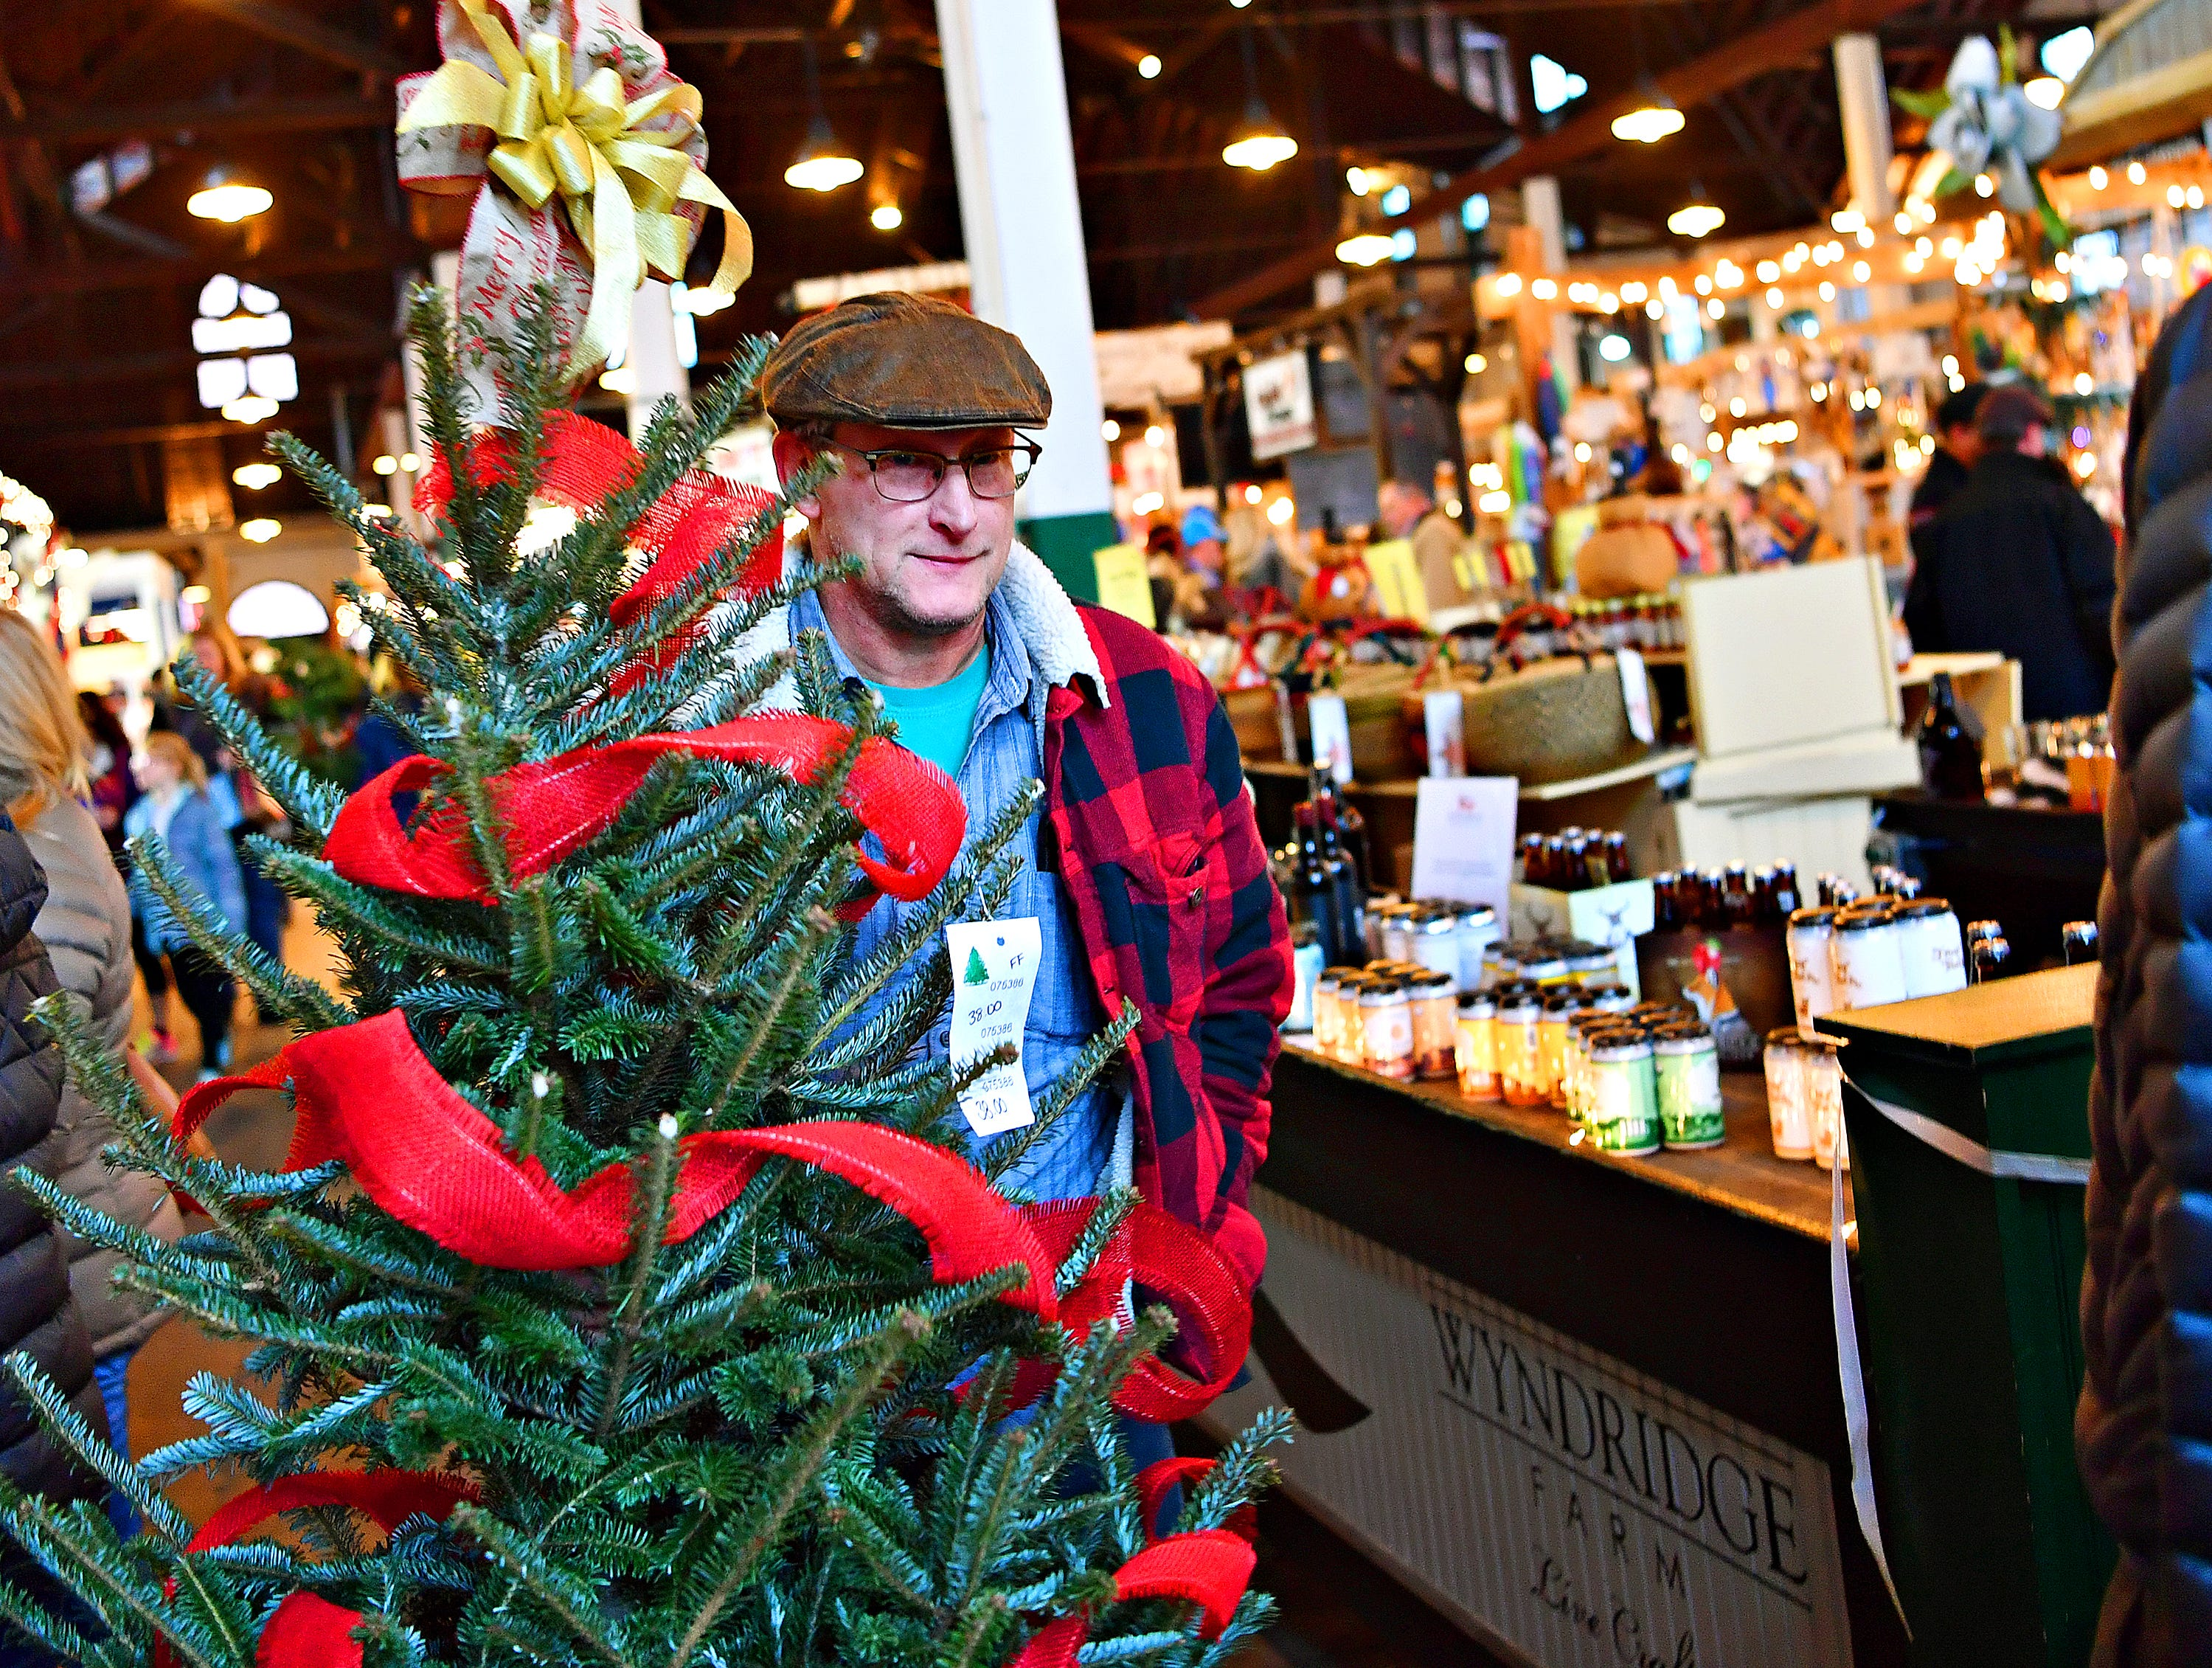 Todd Sauter, of West Manchester Township, carries his freshly cut Christmas Tree out of Central Market during Small Business Saturday in York City, Saturday, Nov. 24, 2018. Dawn J. Sagert photo